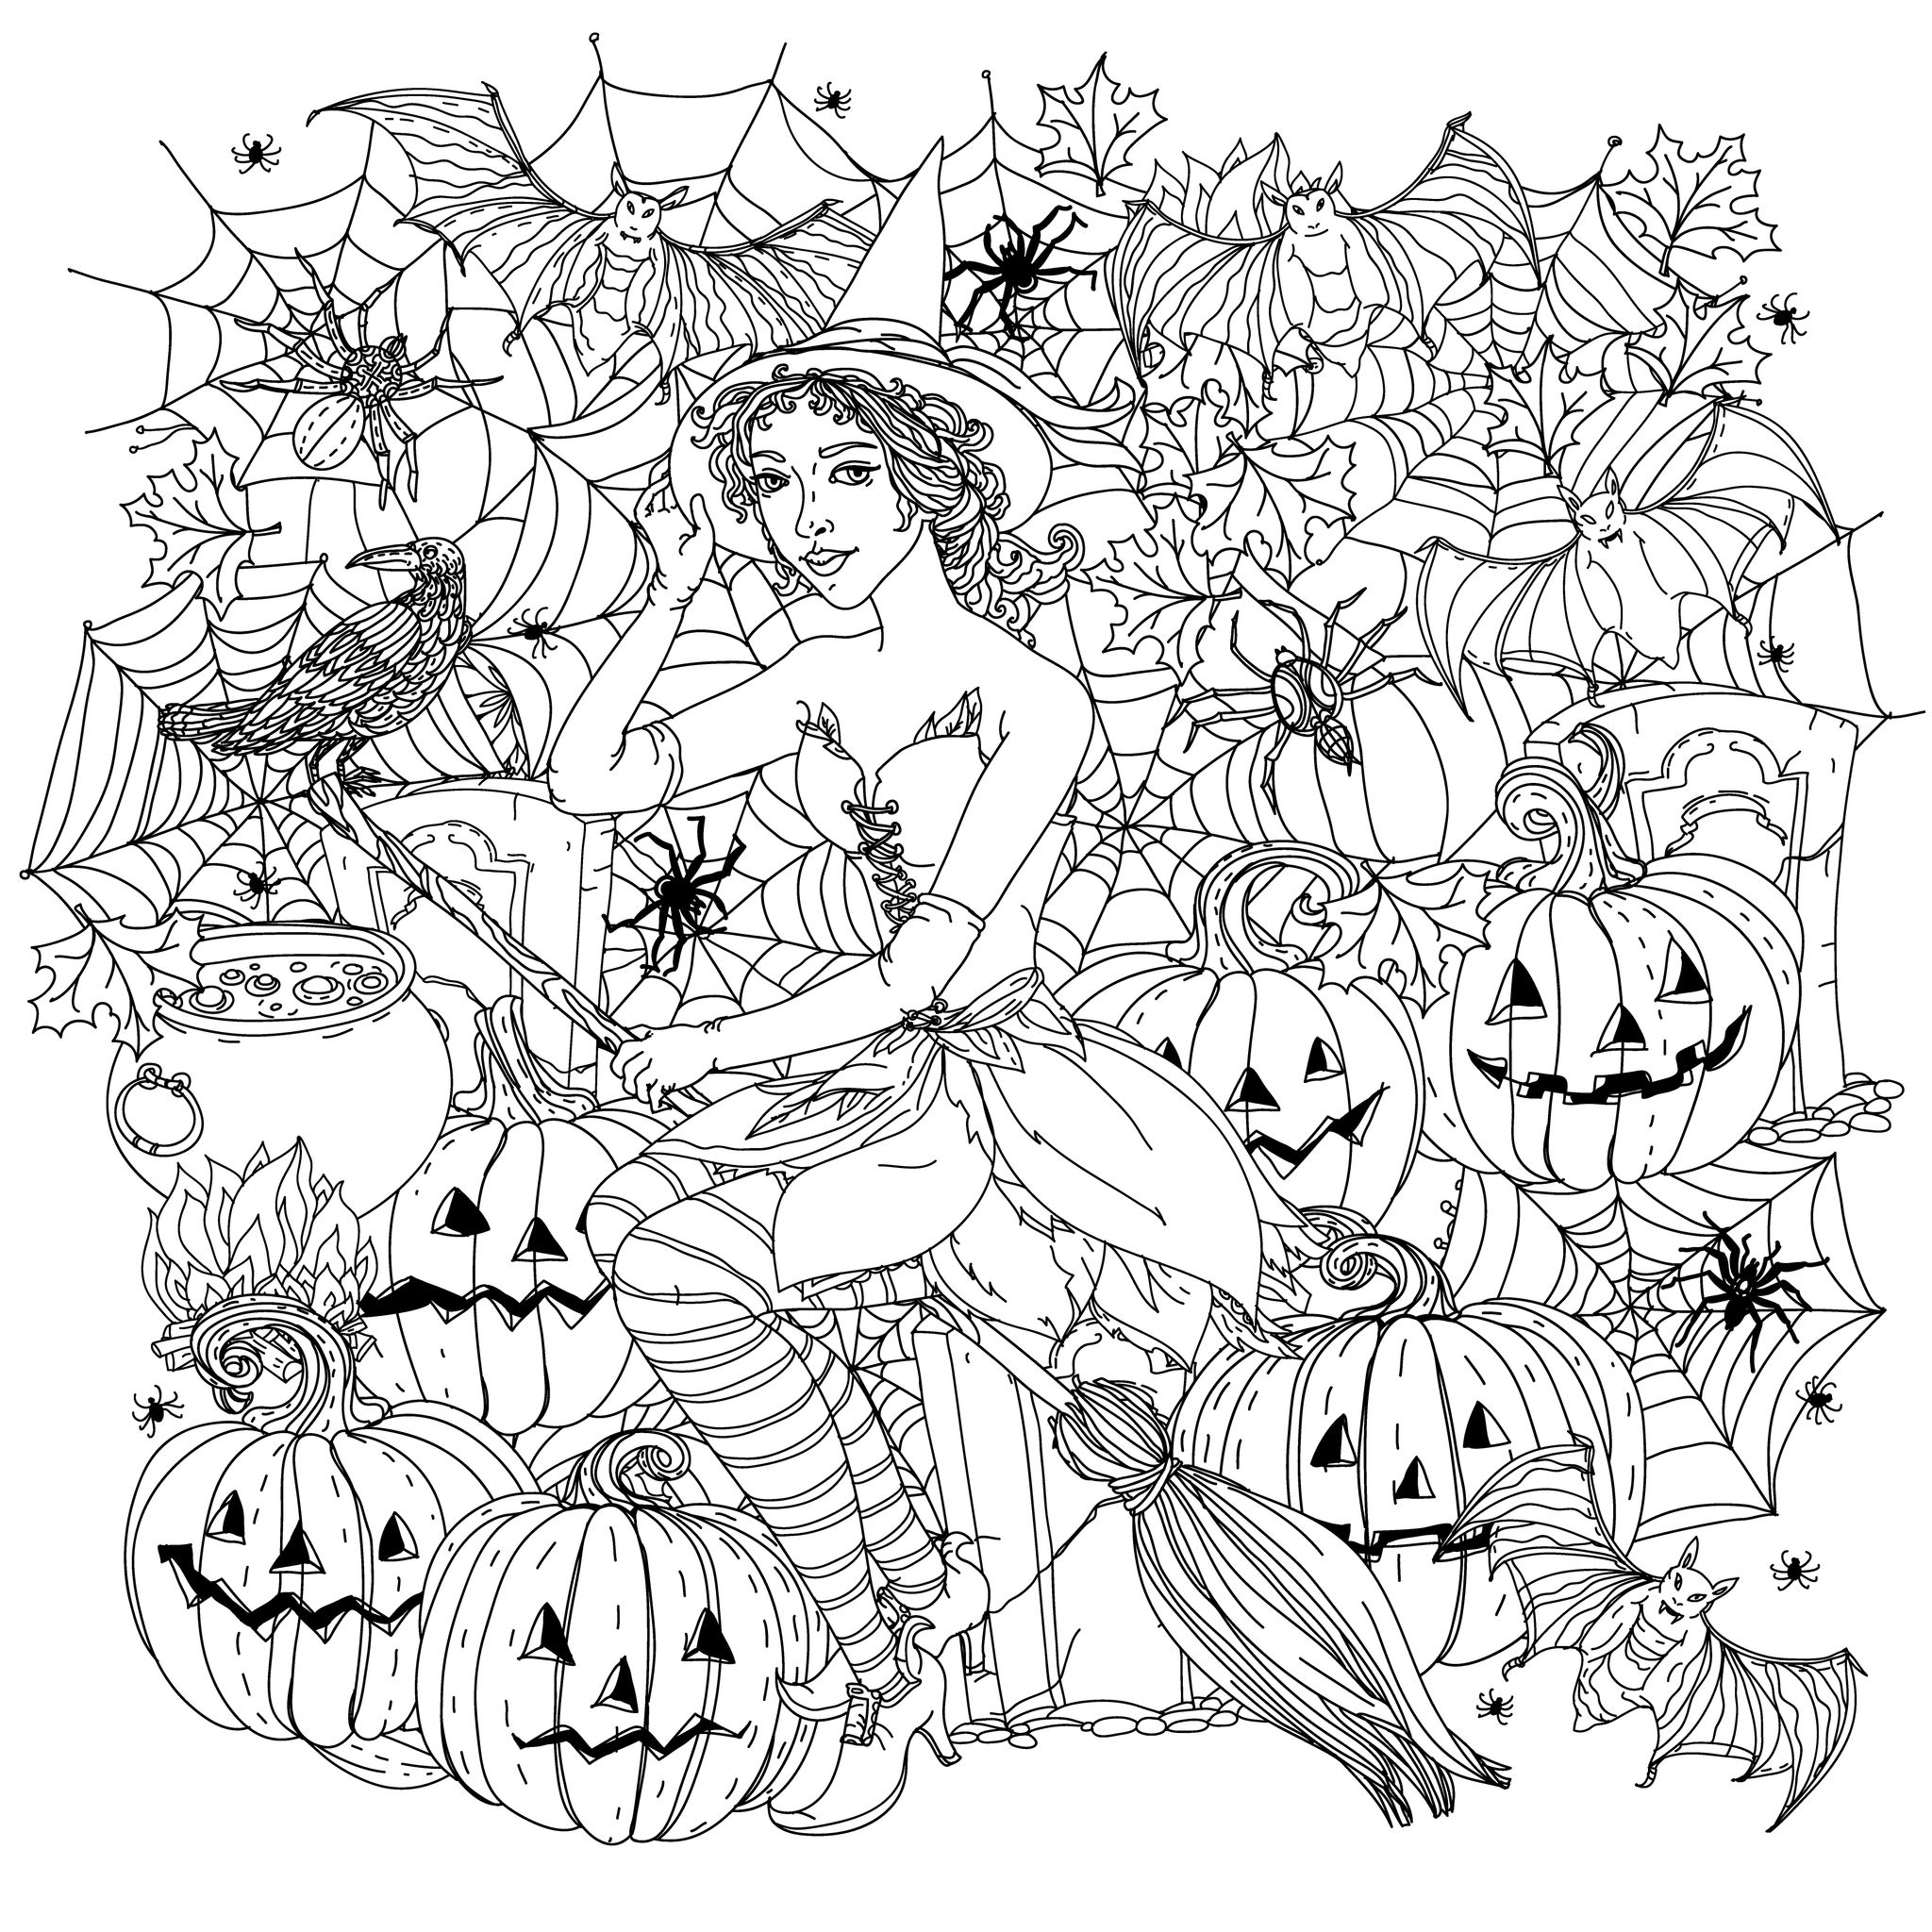 pumpkin coloring pages for adults - halloween adult coloring pages image=events halloween coloring halloween witch with pumpkins by mashabr 1